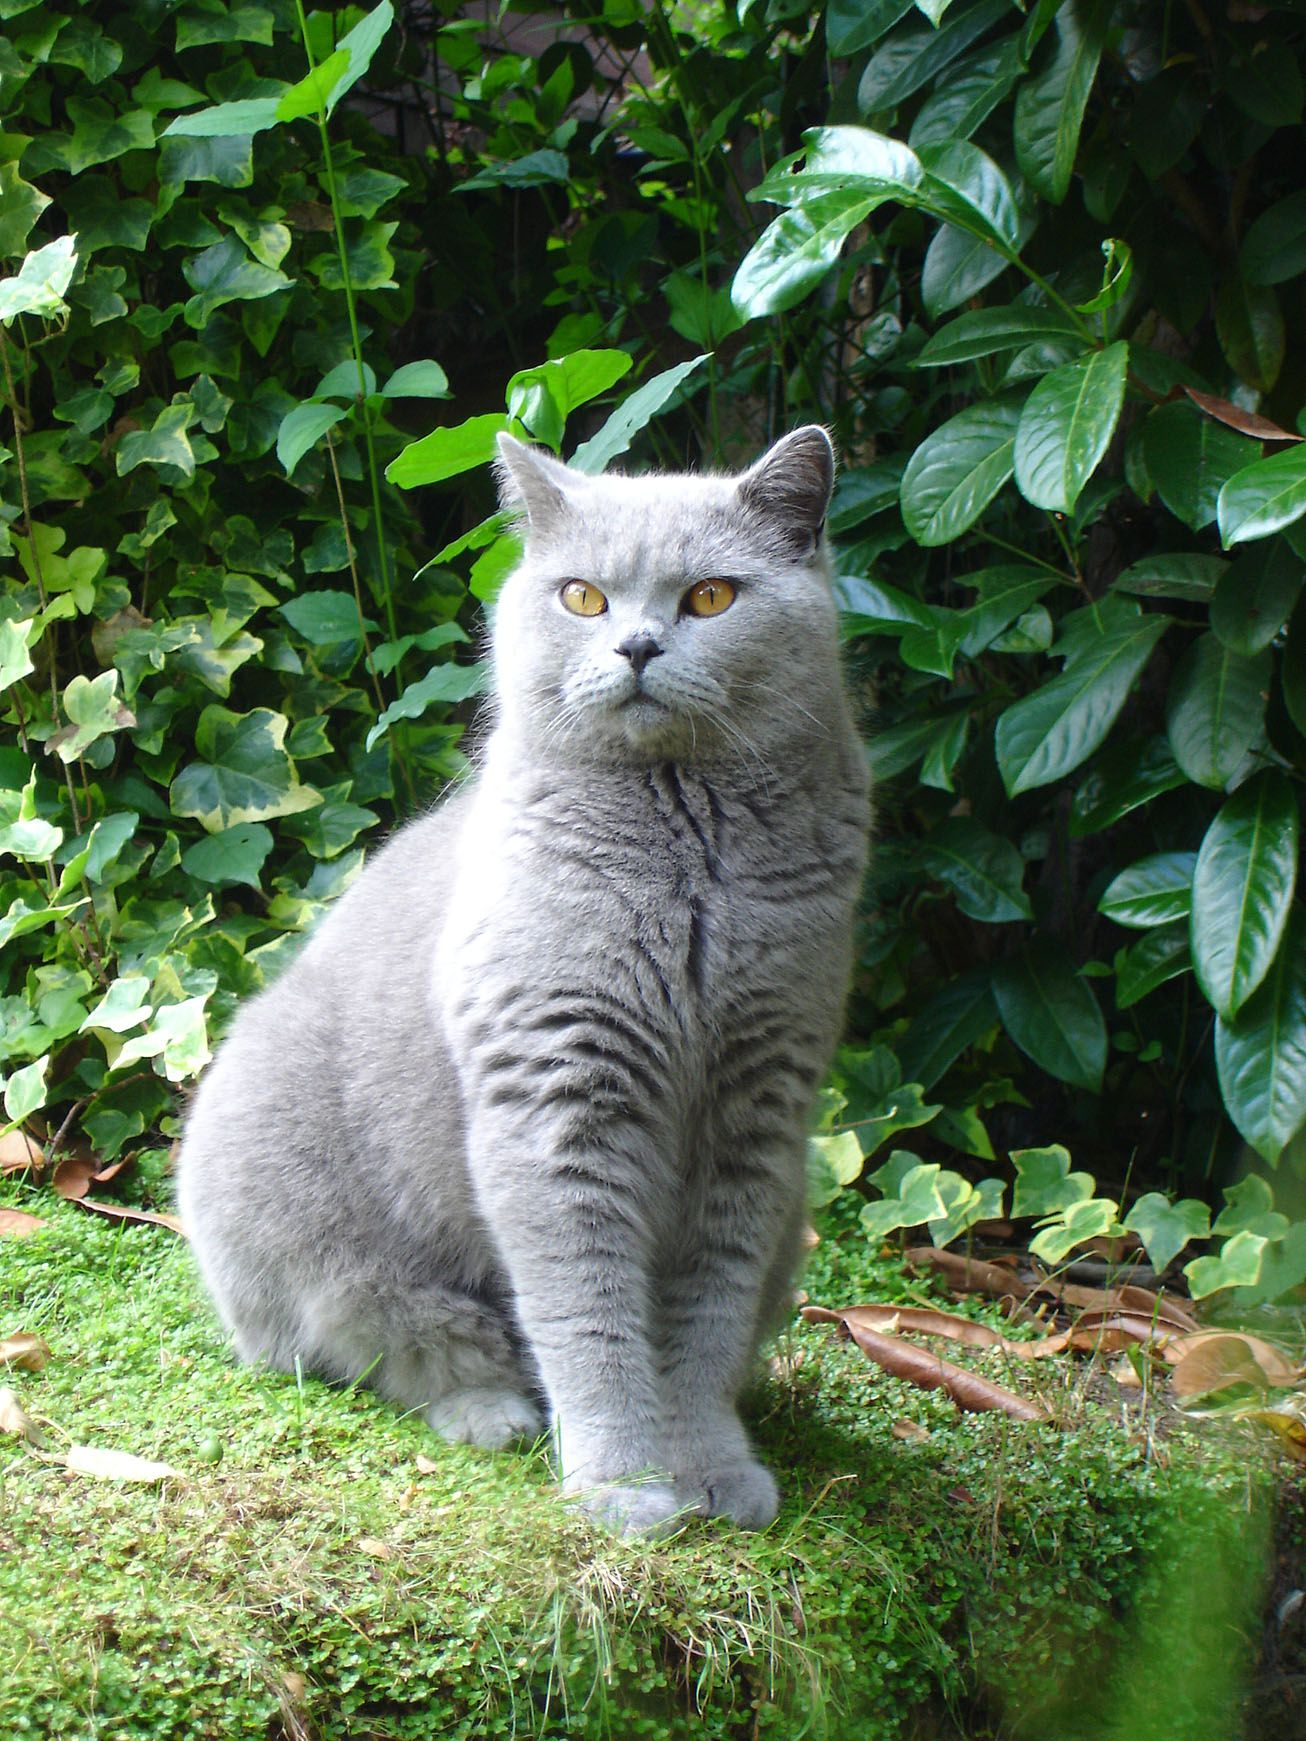 I Will Have A British Shorthair Named Wilton Who Will Be Fancy And Charming Cute Cats And Dogs British Shorthair Cats Gorgeous Cats